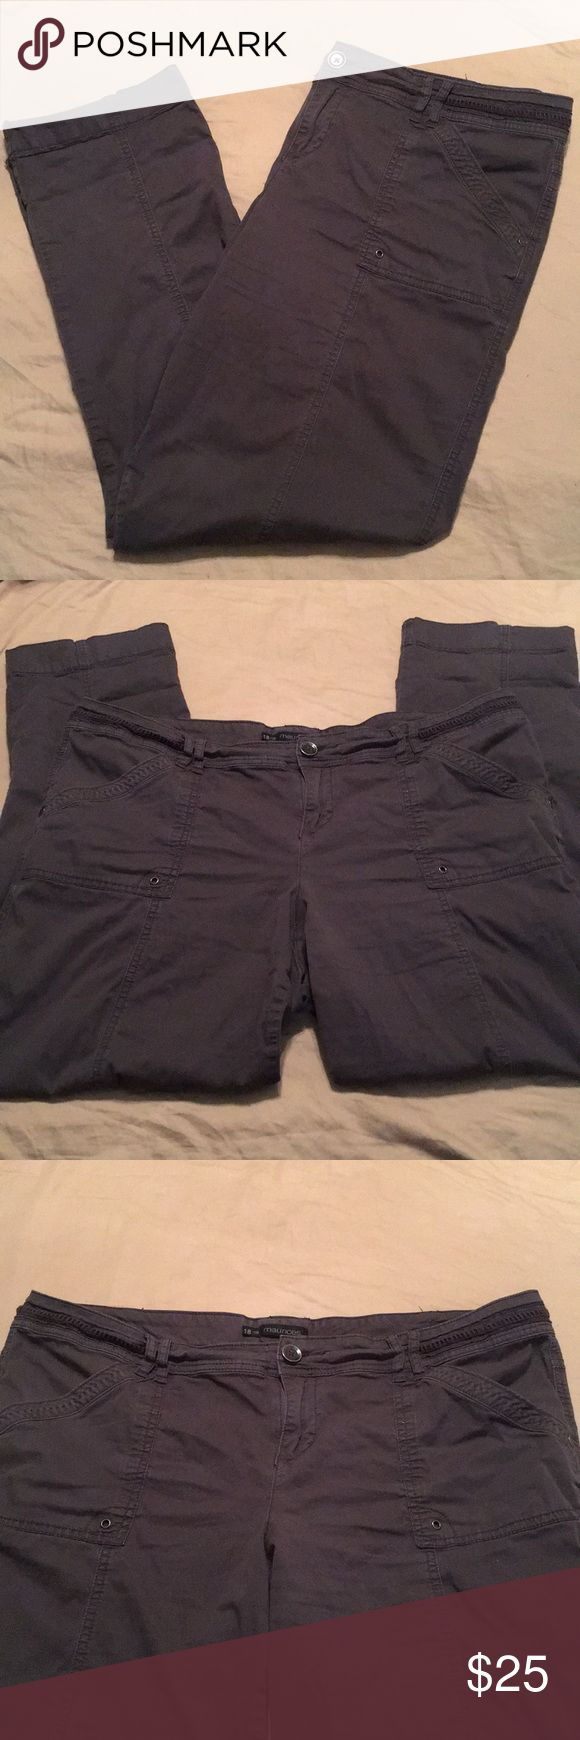 Maurices pants/capris Maurices pants/capris for sale! SZ:18, charcoal gray in color, soft cotton material that feel like khaki/docker pants, worn a handful of times--still in great condition! They are full length pants that have the option to be folded and buttoned into capris (see 5th picture) which makes them perfect for multiple seasons of wearing. Inseam (when full length pants) measures approx. 31in and the capris length would depend on how many times you fold them; leg opening is…